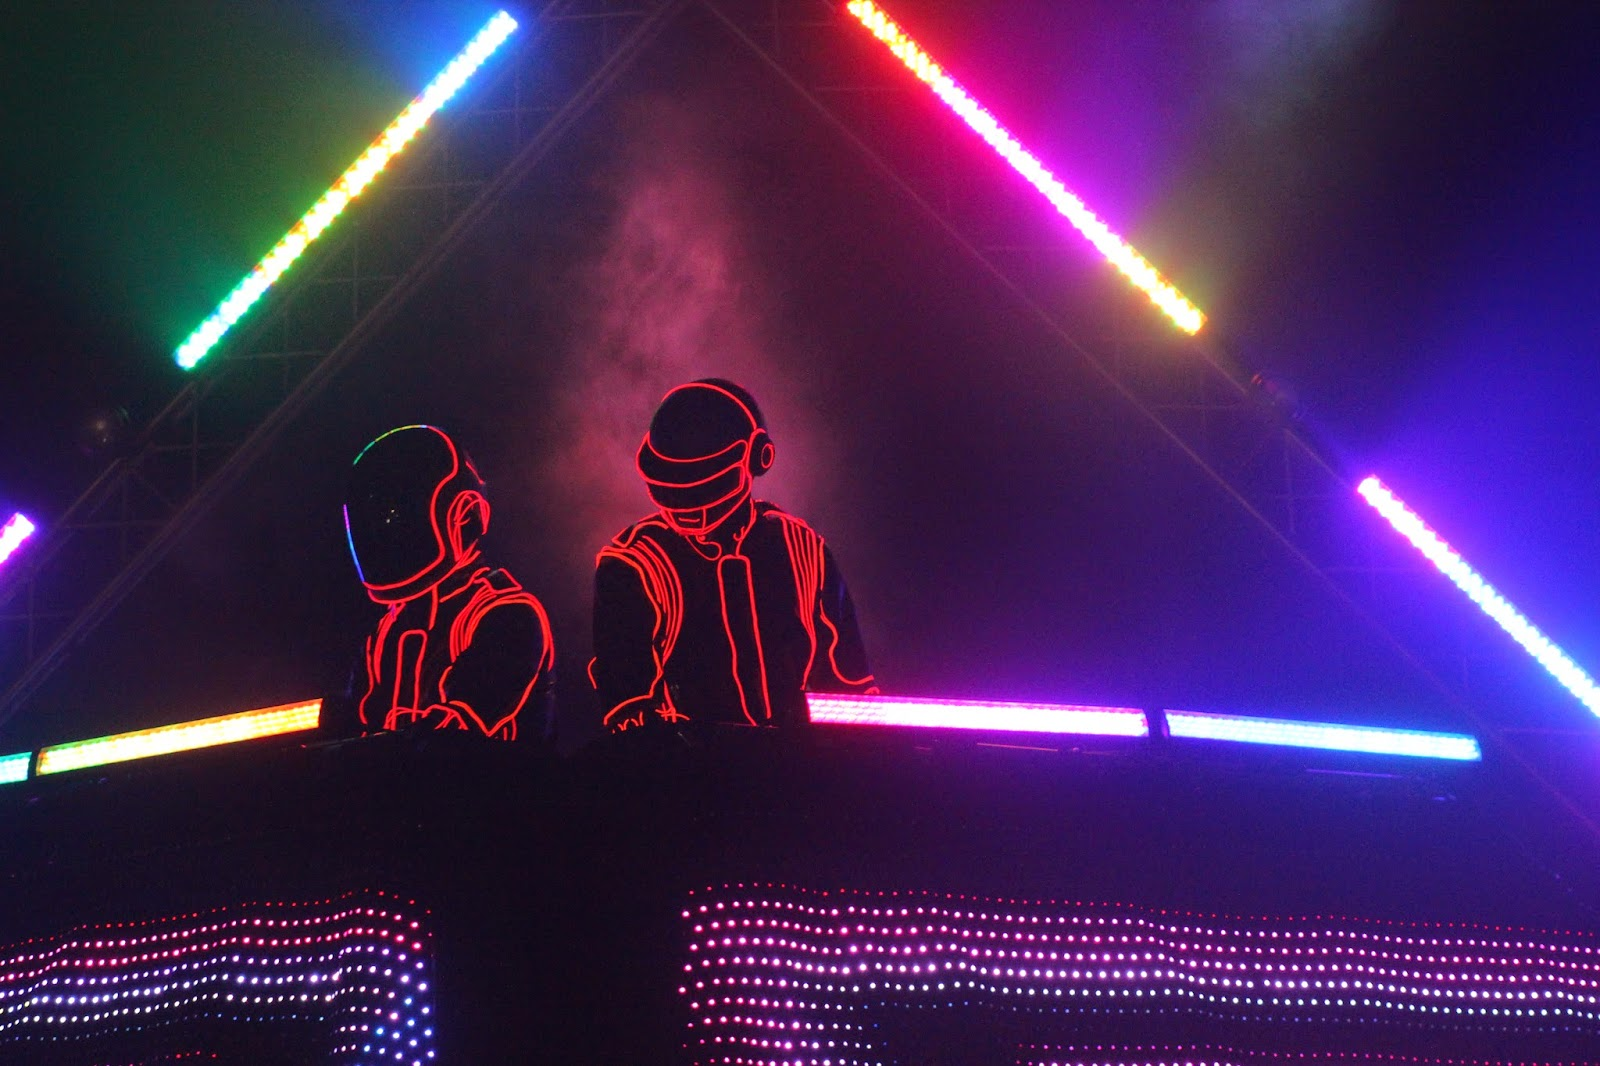 X URBAN MUSIC MAG: One More Time captures the soul of Daft Punk